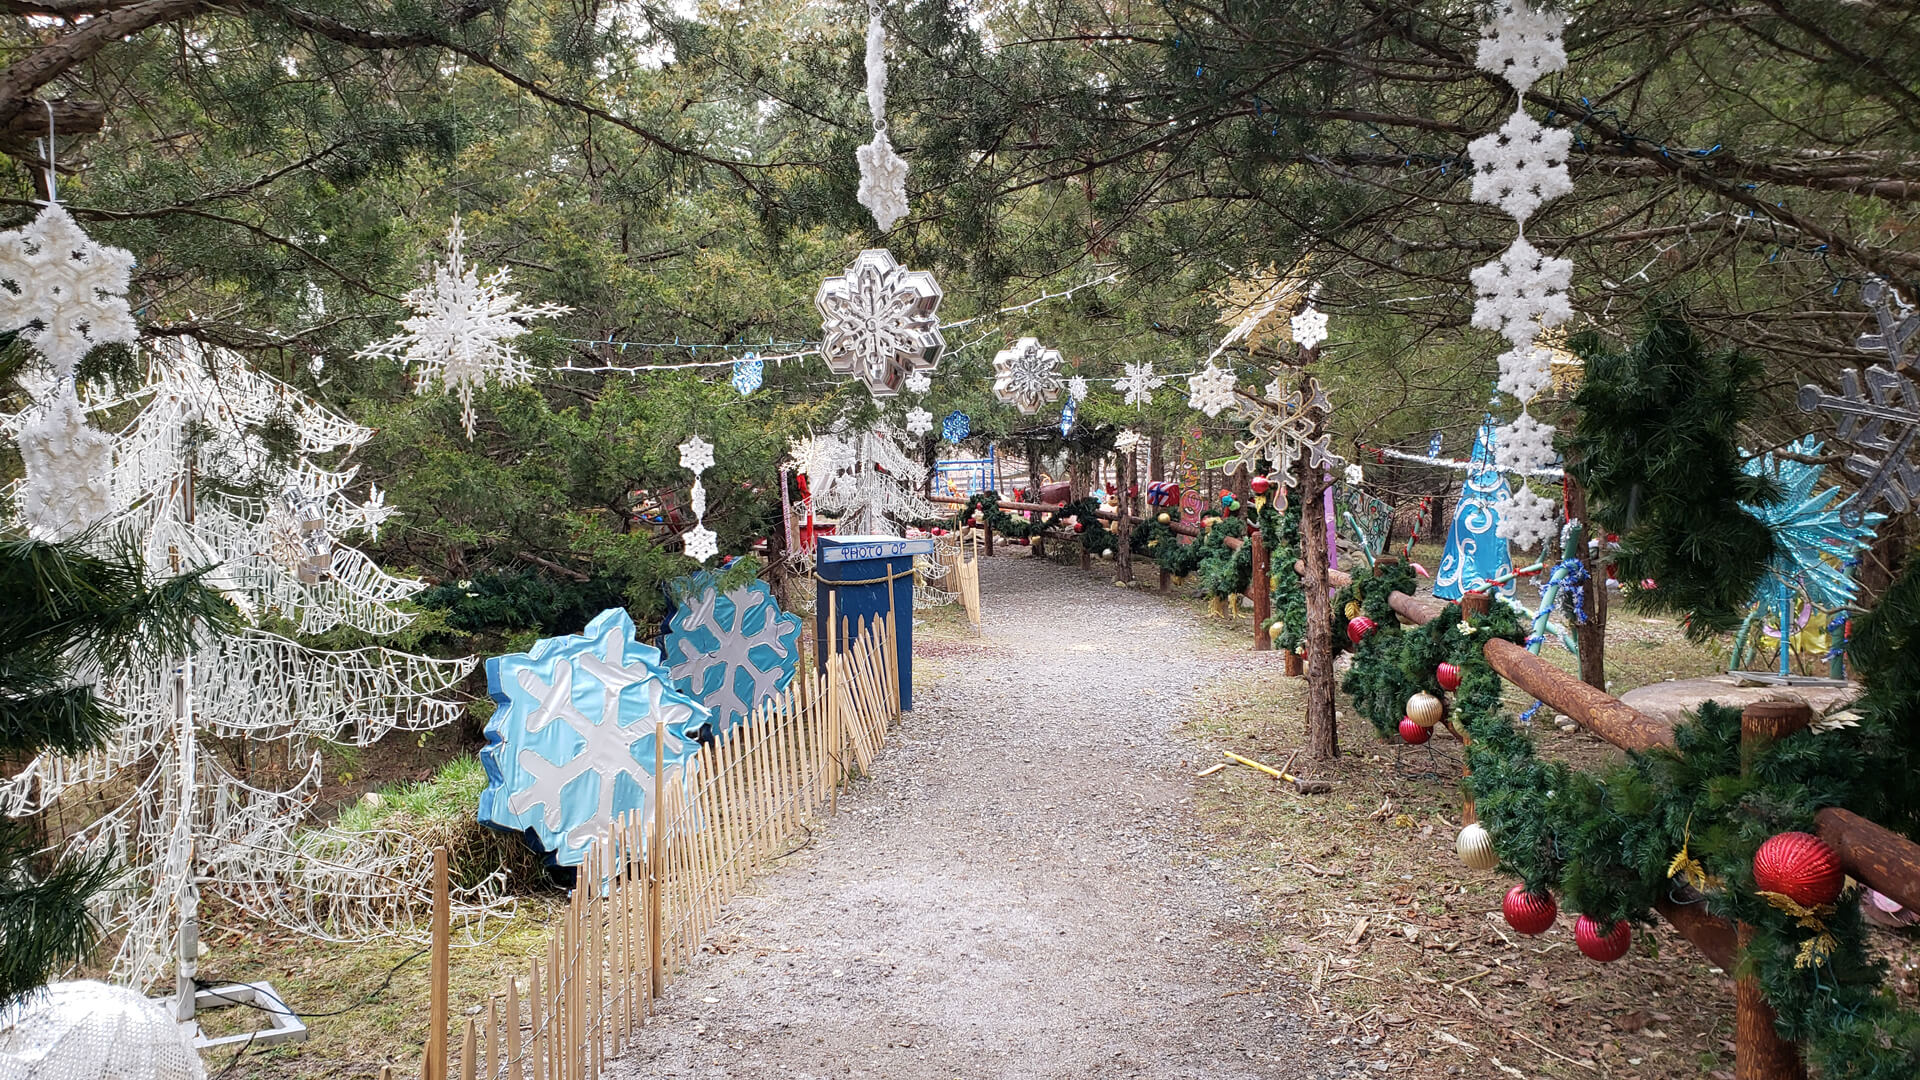 A wide path through the forest lined with myriad holiday decorations, such as garlands and hanging snowflakes